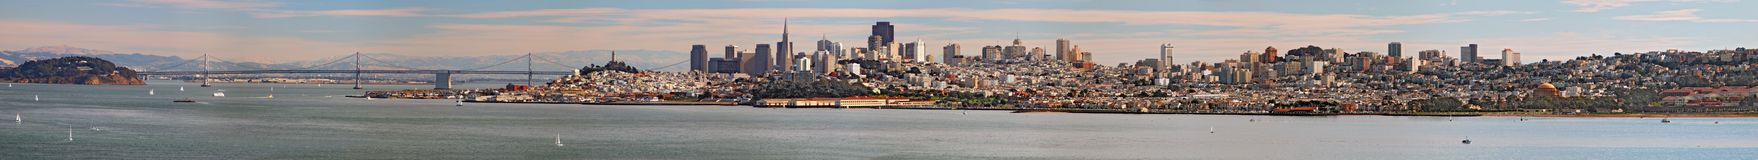 San Francisco panorama Stock Photography